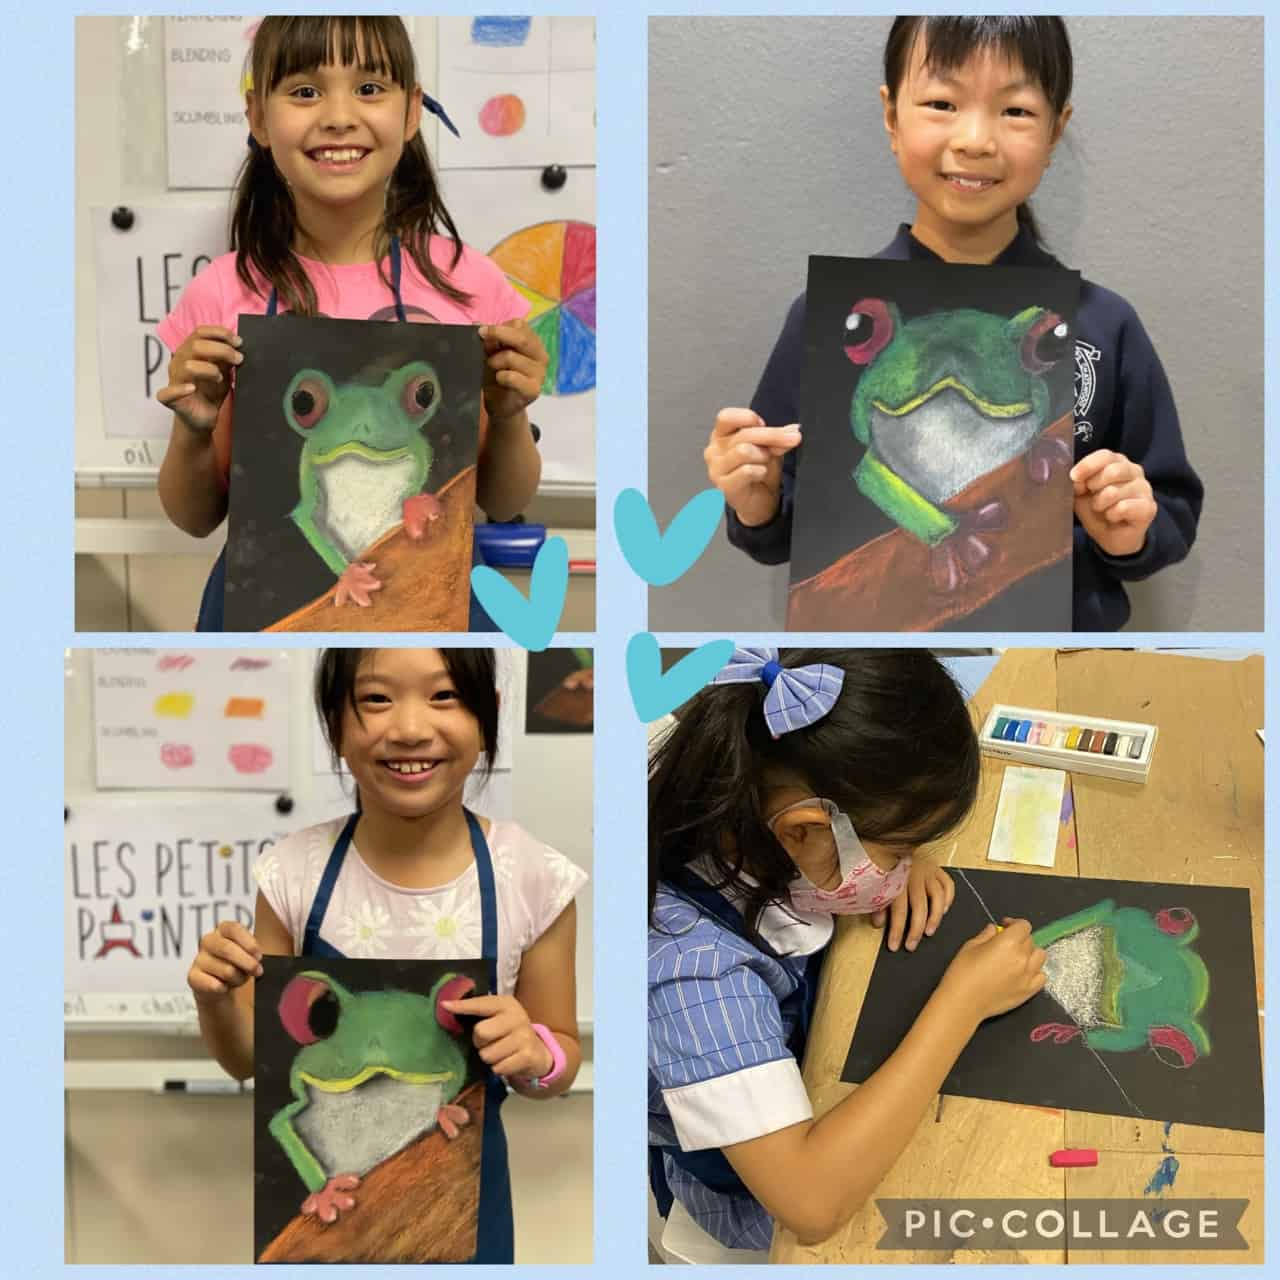 Art classes for kids, Les Petits Painters arts and crafts classes for children in Sydney, drawing lessons